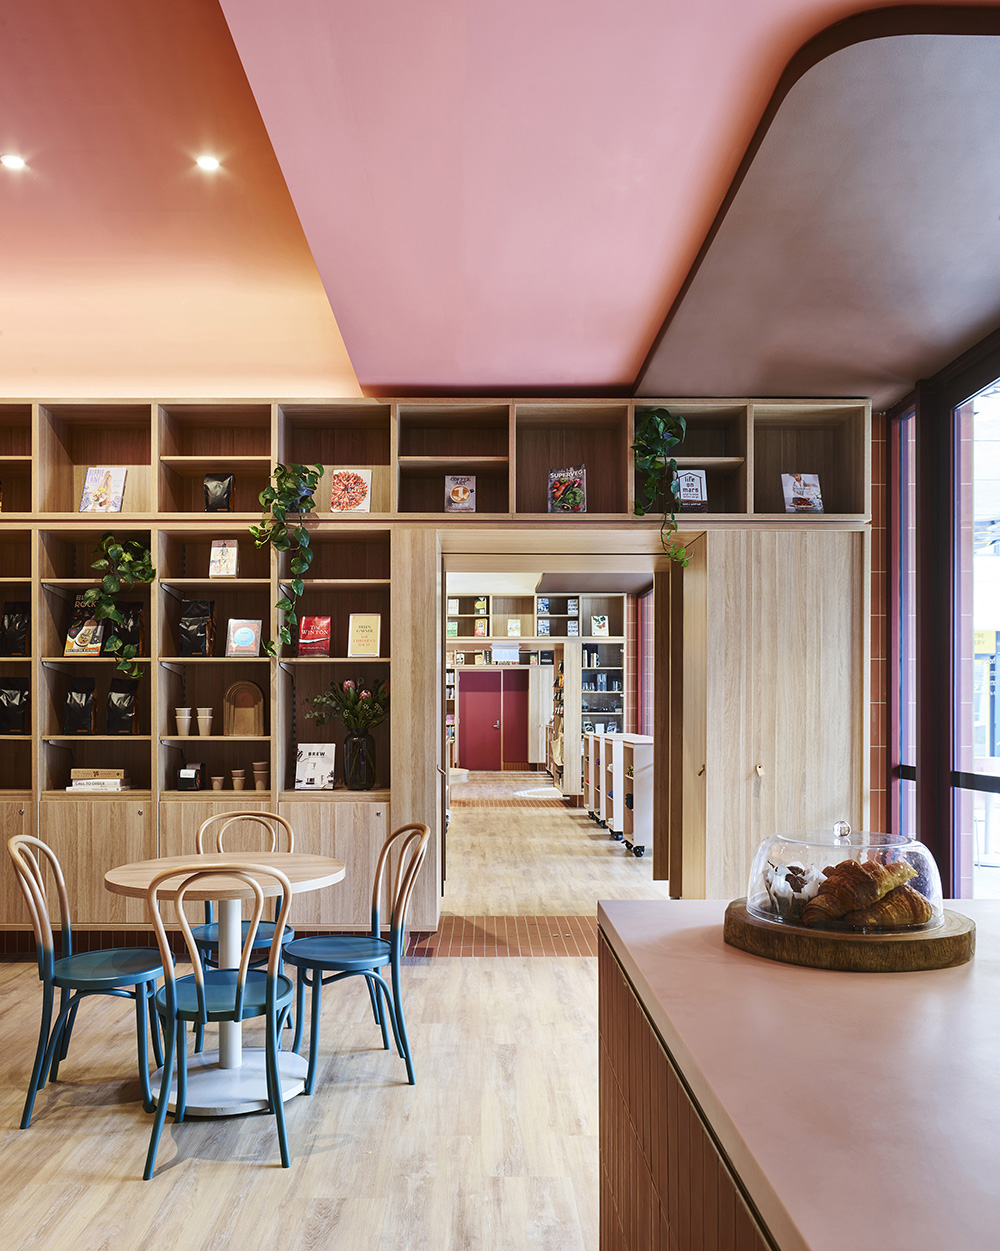 Dulux Colour Awards 2019 Commercial Interior: Workplace and Retail Commendation Project _ The UNSW Bookshop (NSW) by SJB Photographer _ Anson Smart